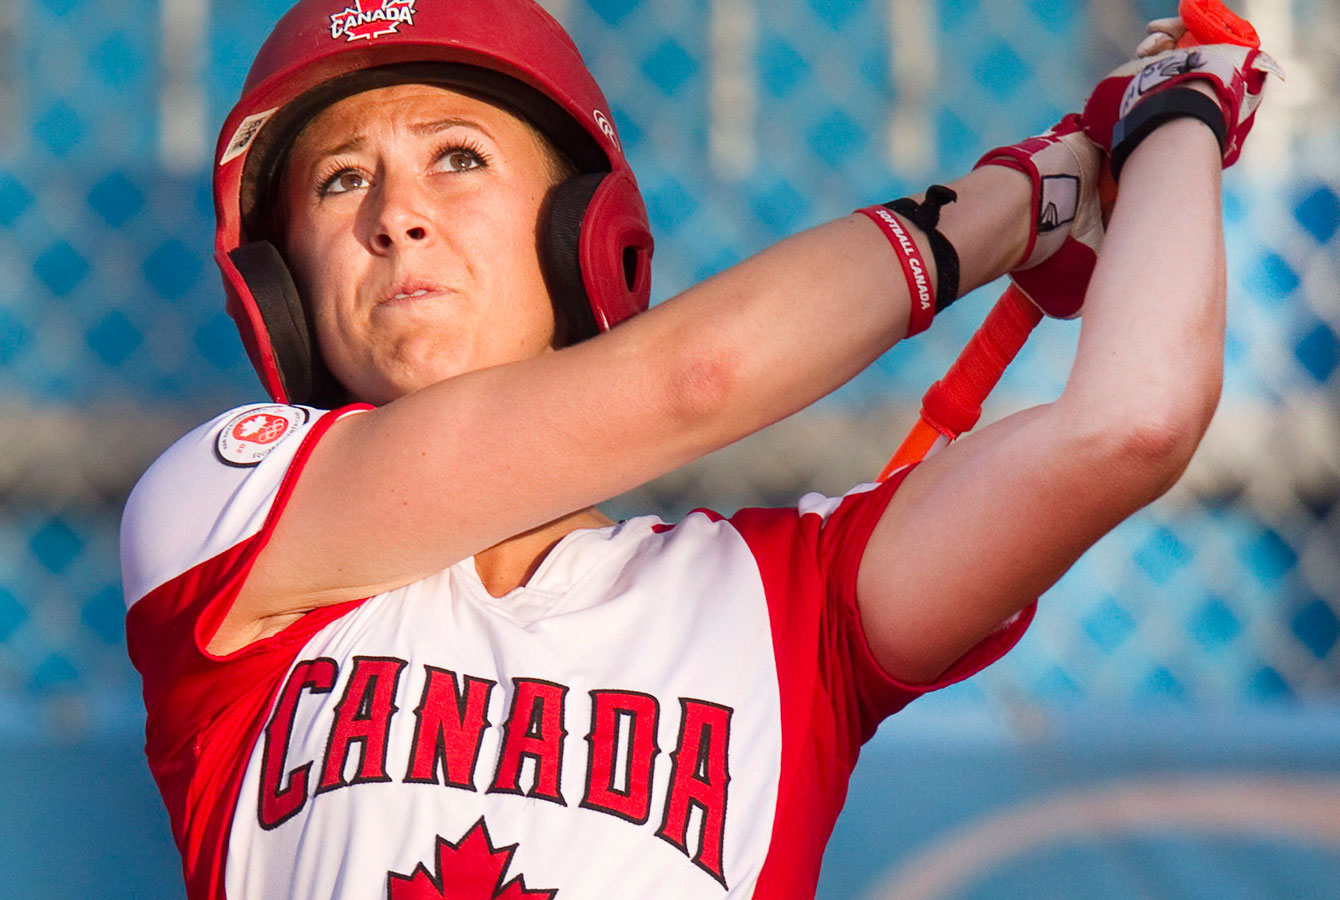 Canada's Erika Polidori hits a ball to left field to drive in a run at TO2015